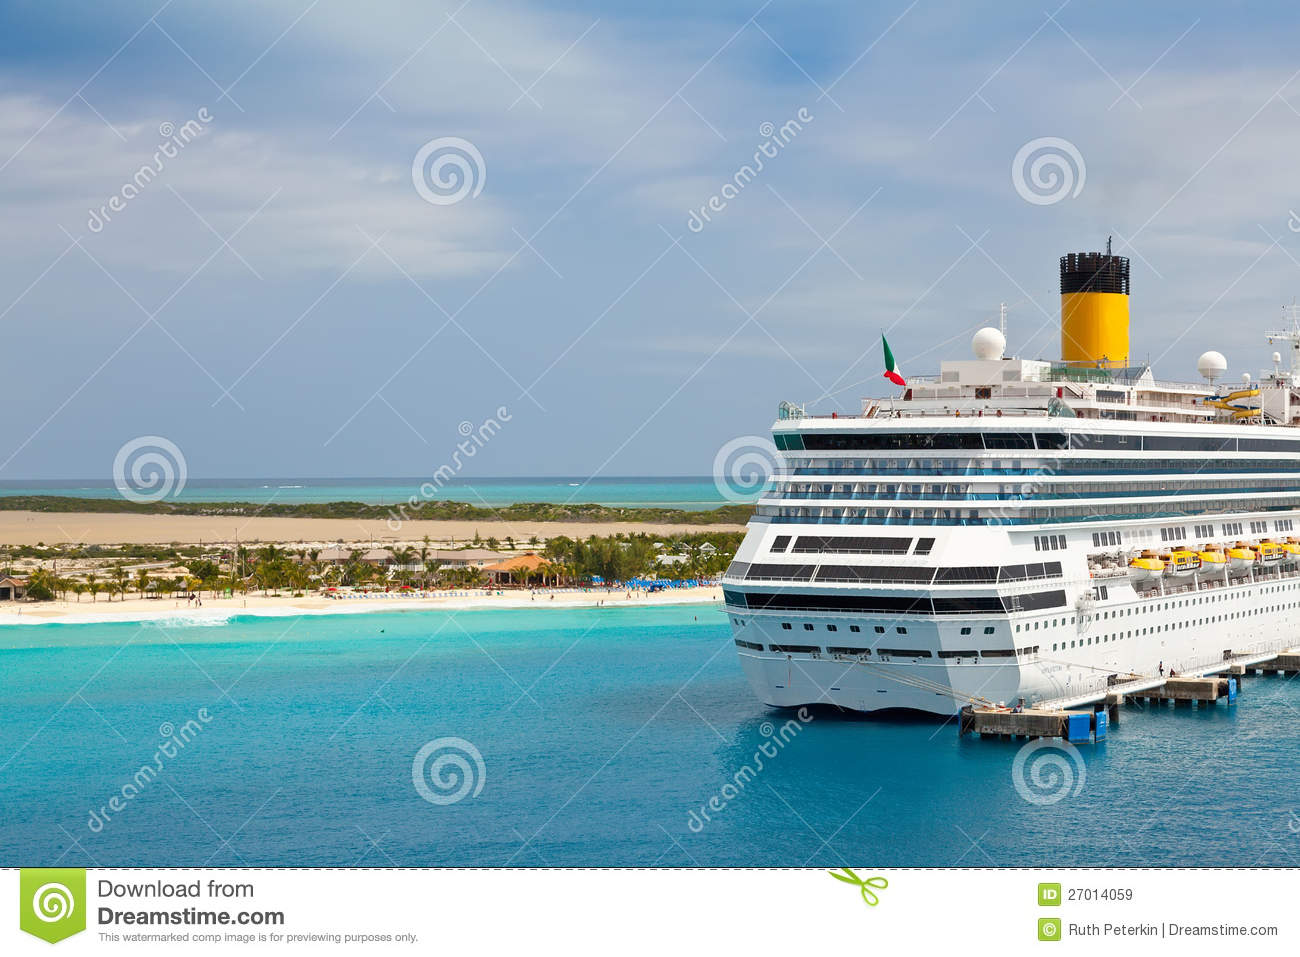 Cruise Ship In Turks And Caicos Islands Stock Image Image - Turks and caicos cruise ship schedule